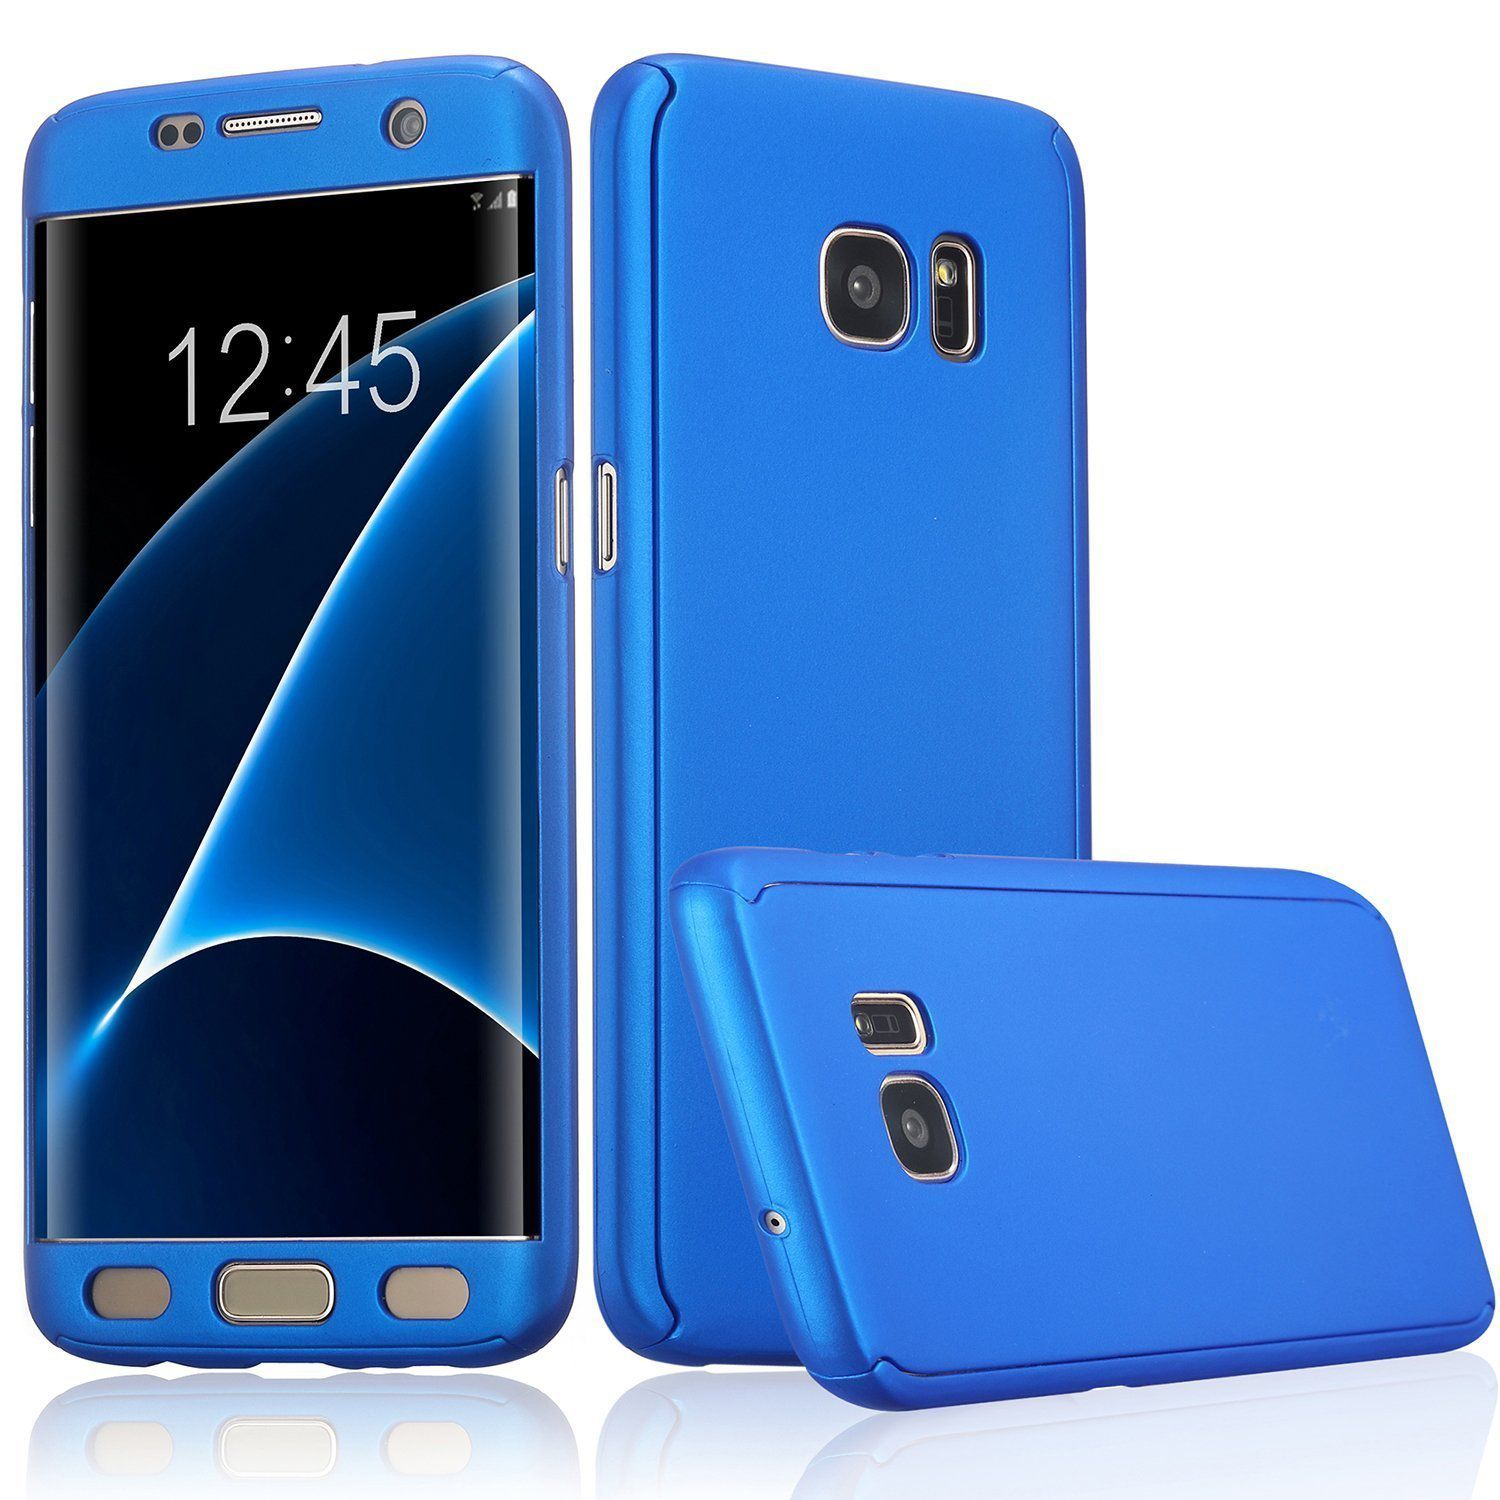 Samsung Galaxy S8 Plus Cases with Stands ClickAway - Blue